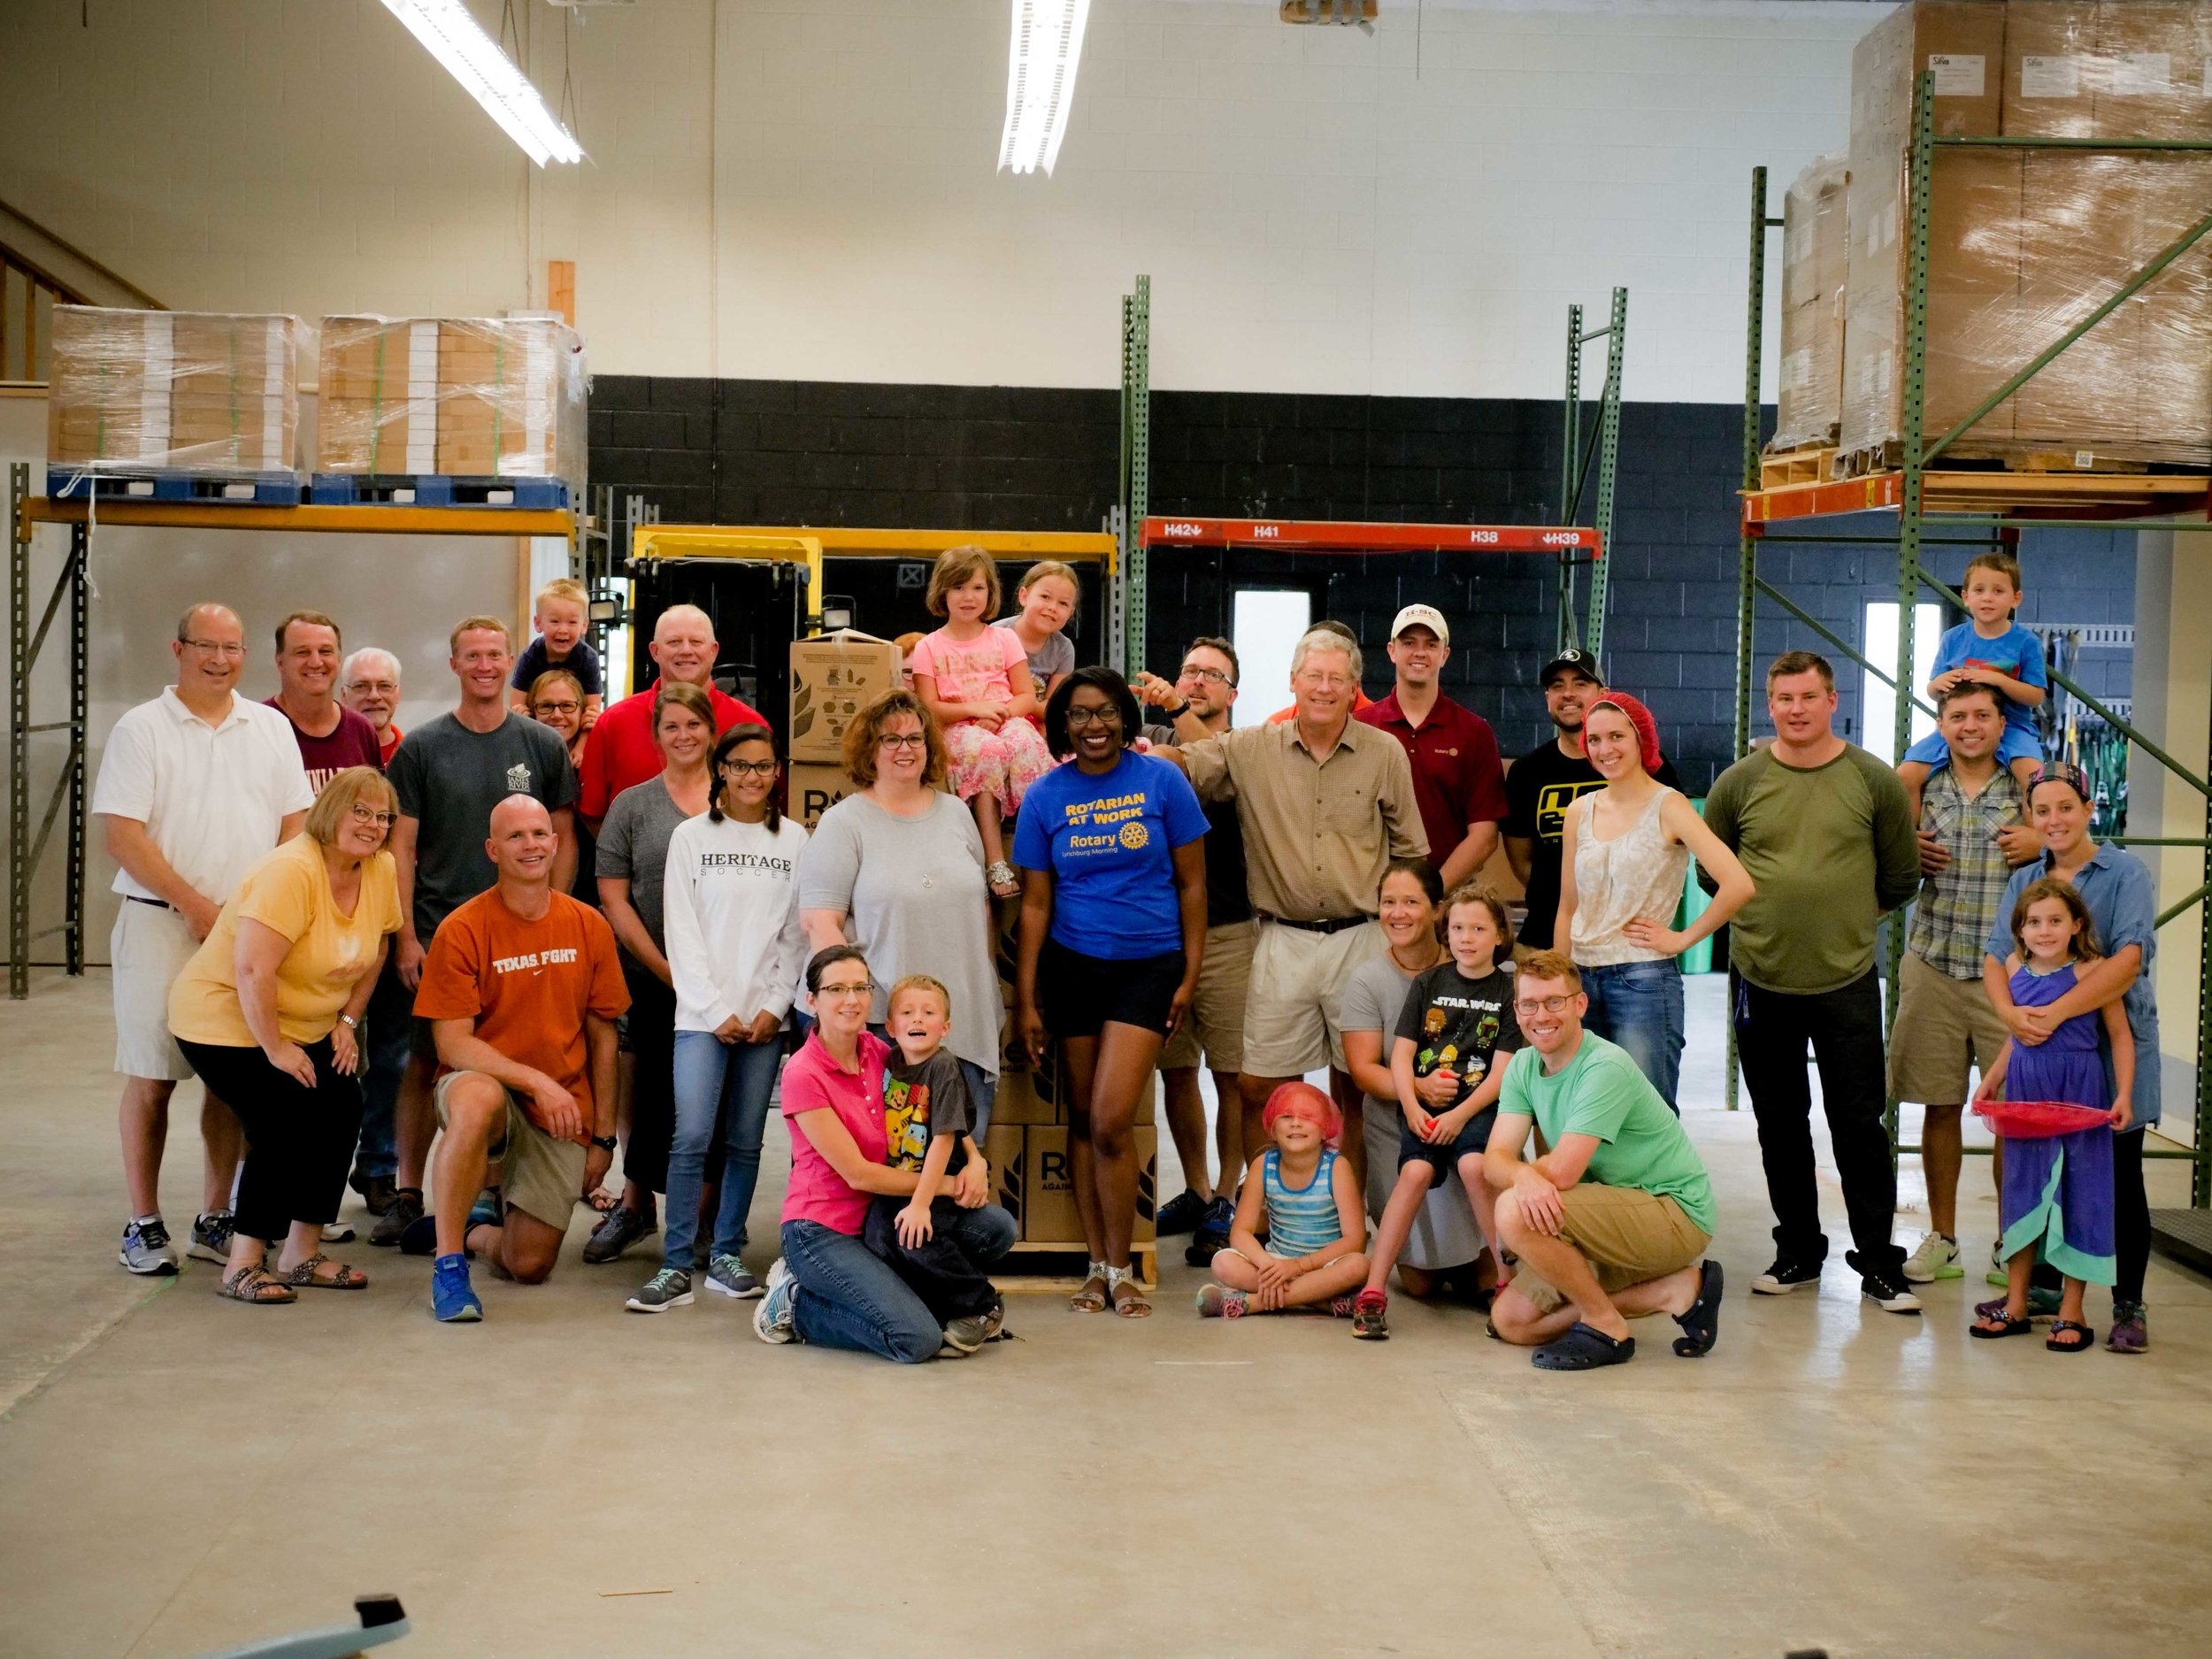 Largest service project in club history at Rise Against Hunger this summer. Over 10,000 meals were packaged and sent to Haiti Outreach Ministries.